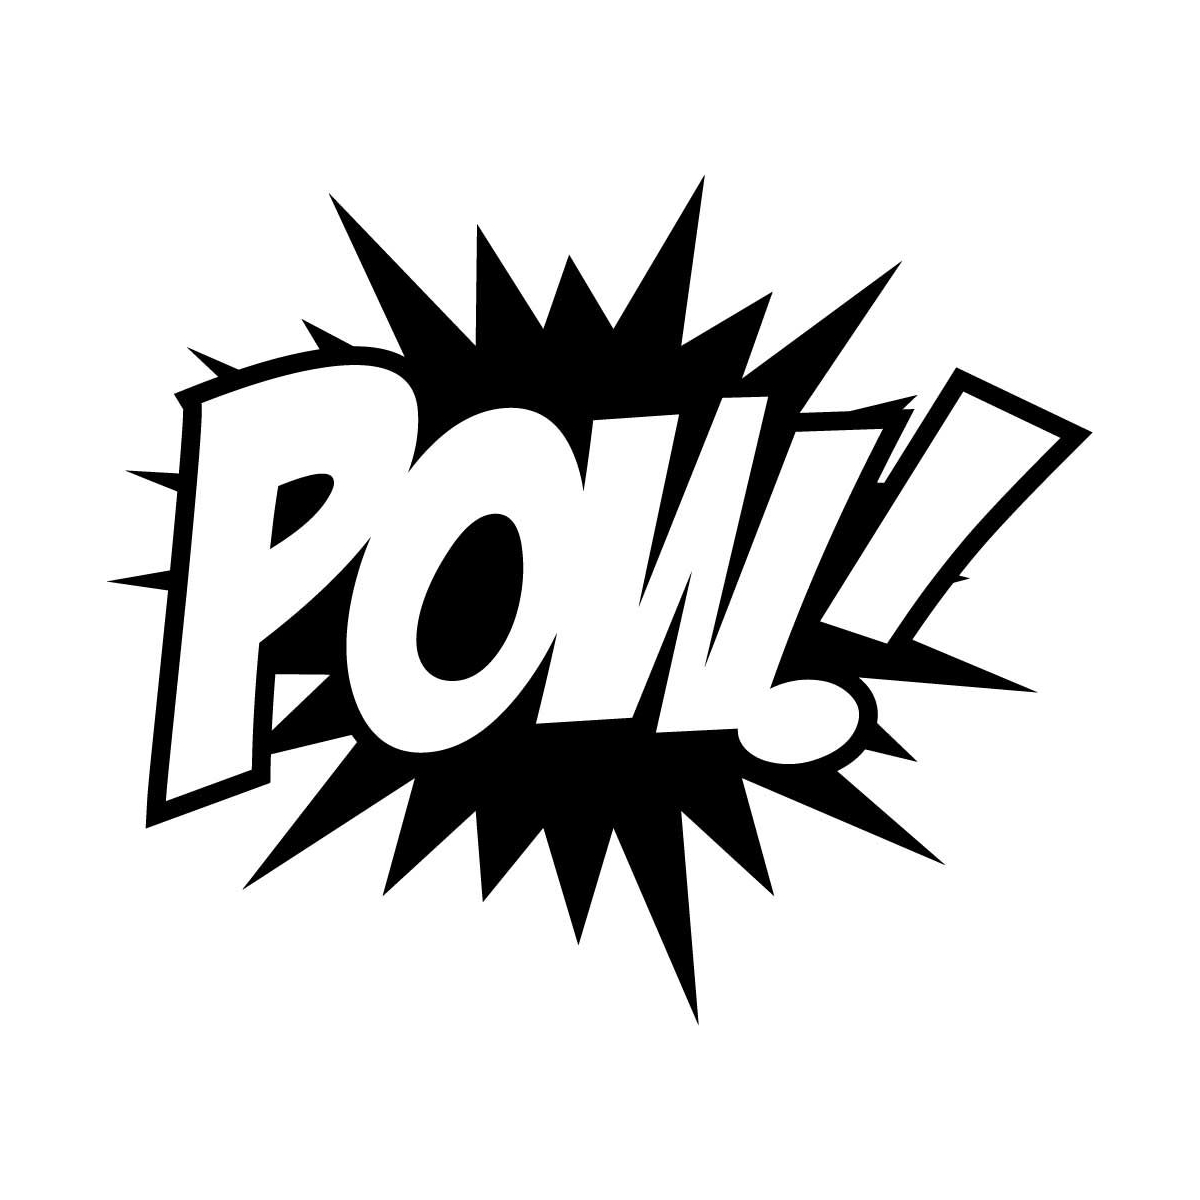 Free Pow Download Free Clip Art Free Clip Art On Clipart